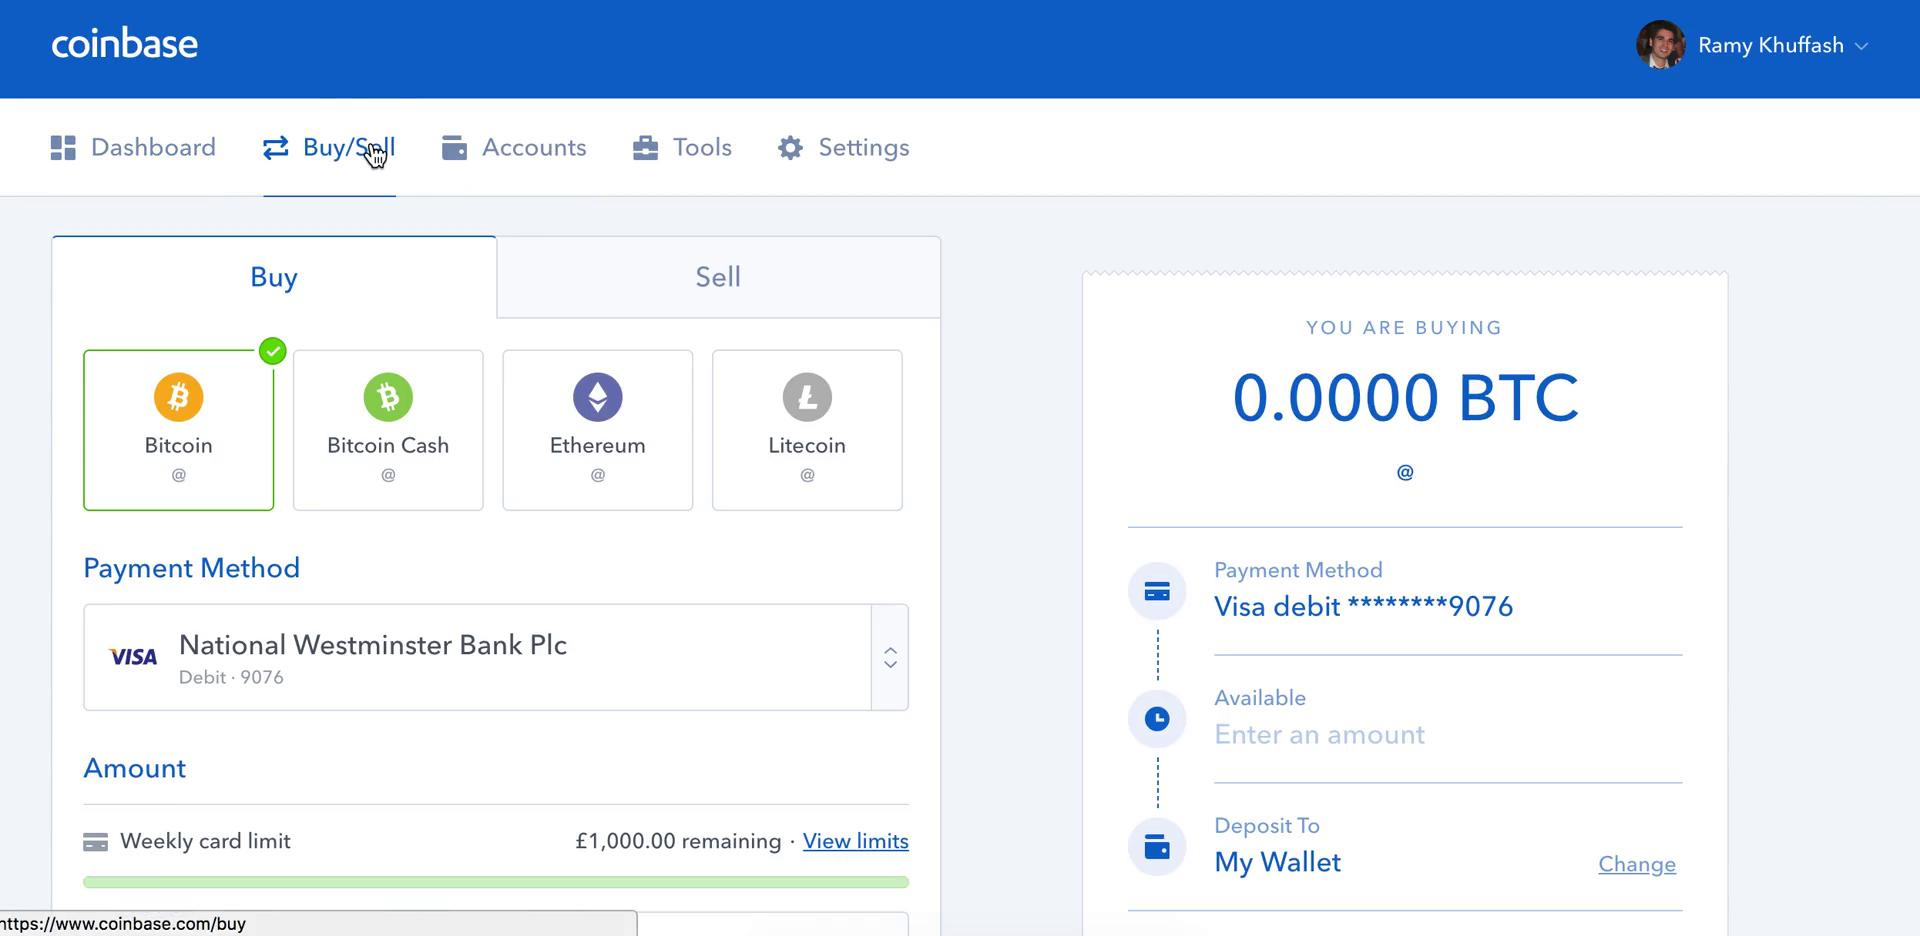 Buying something on Coinbase video screenshot